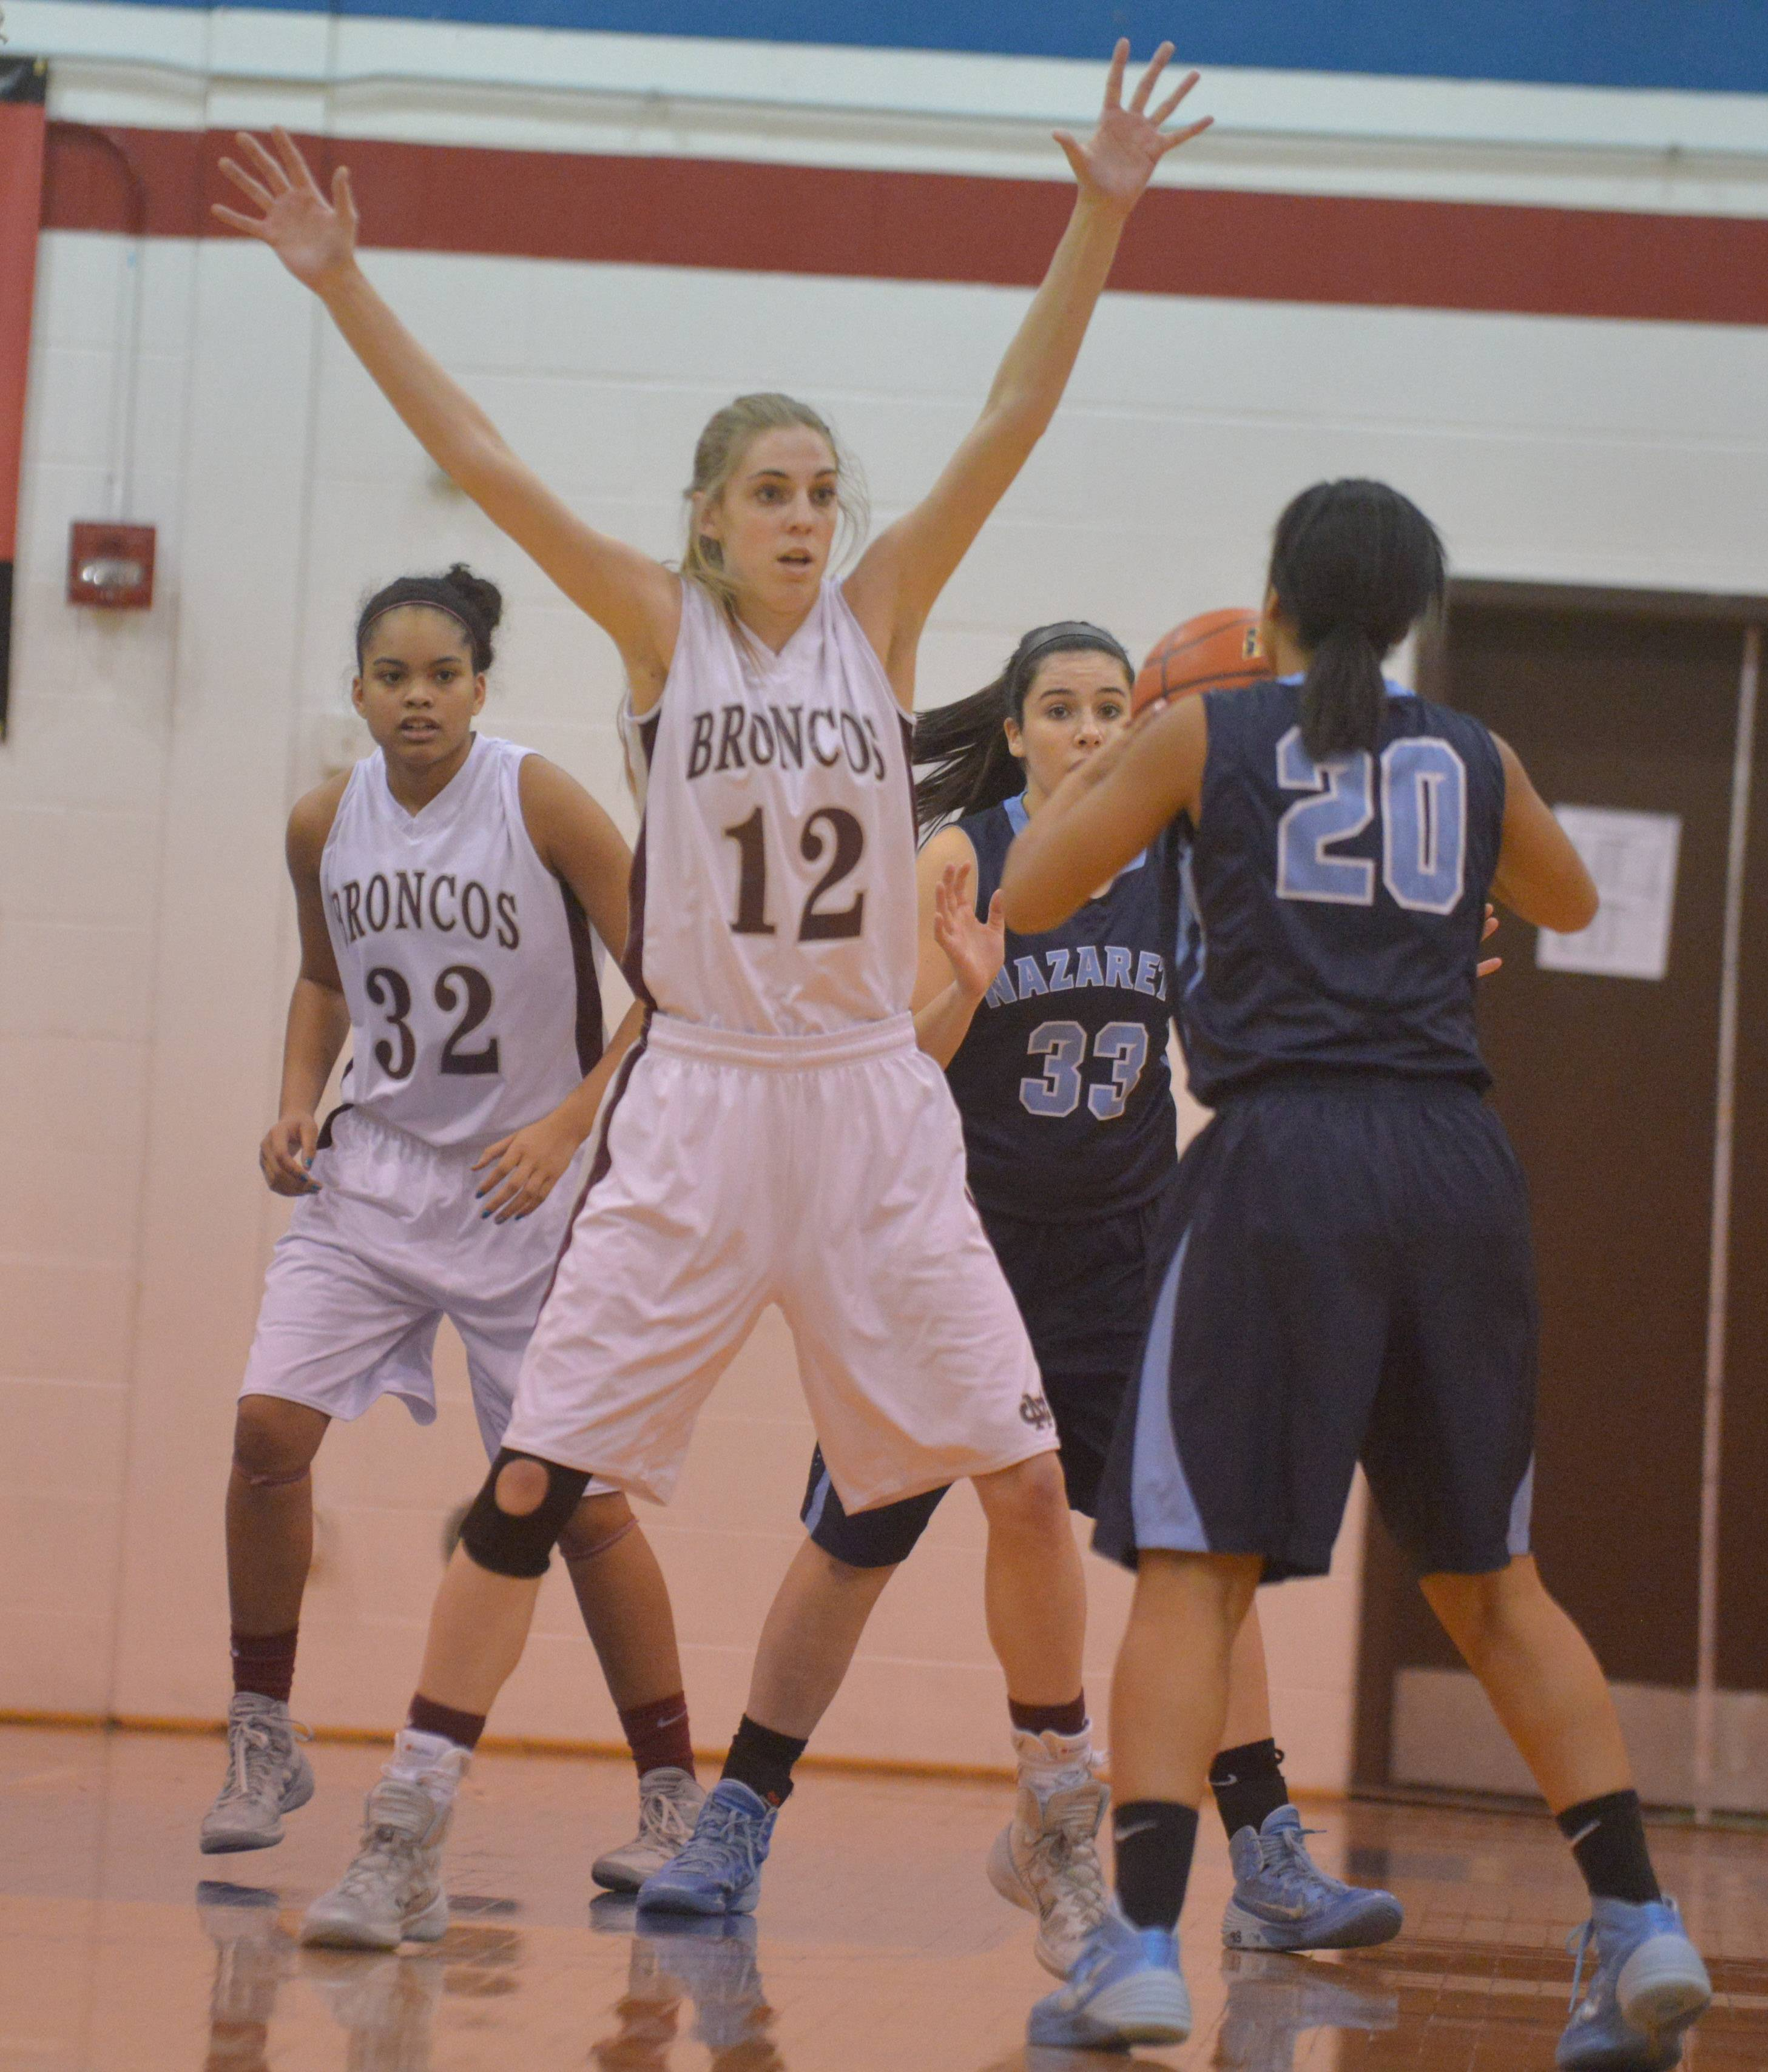 Glenbard South played Nazareth at Glenbard South Tuesday, Feb. 25 in a Class 3A girls basketball sectional semifinal game.